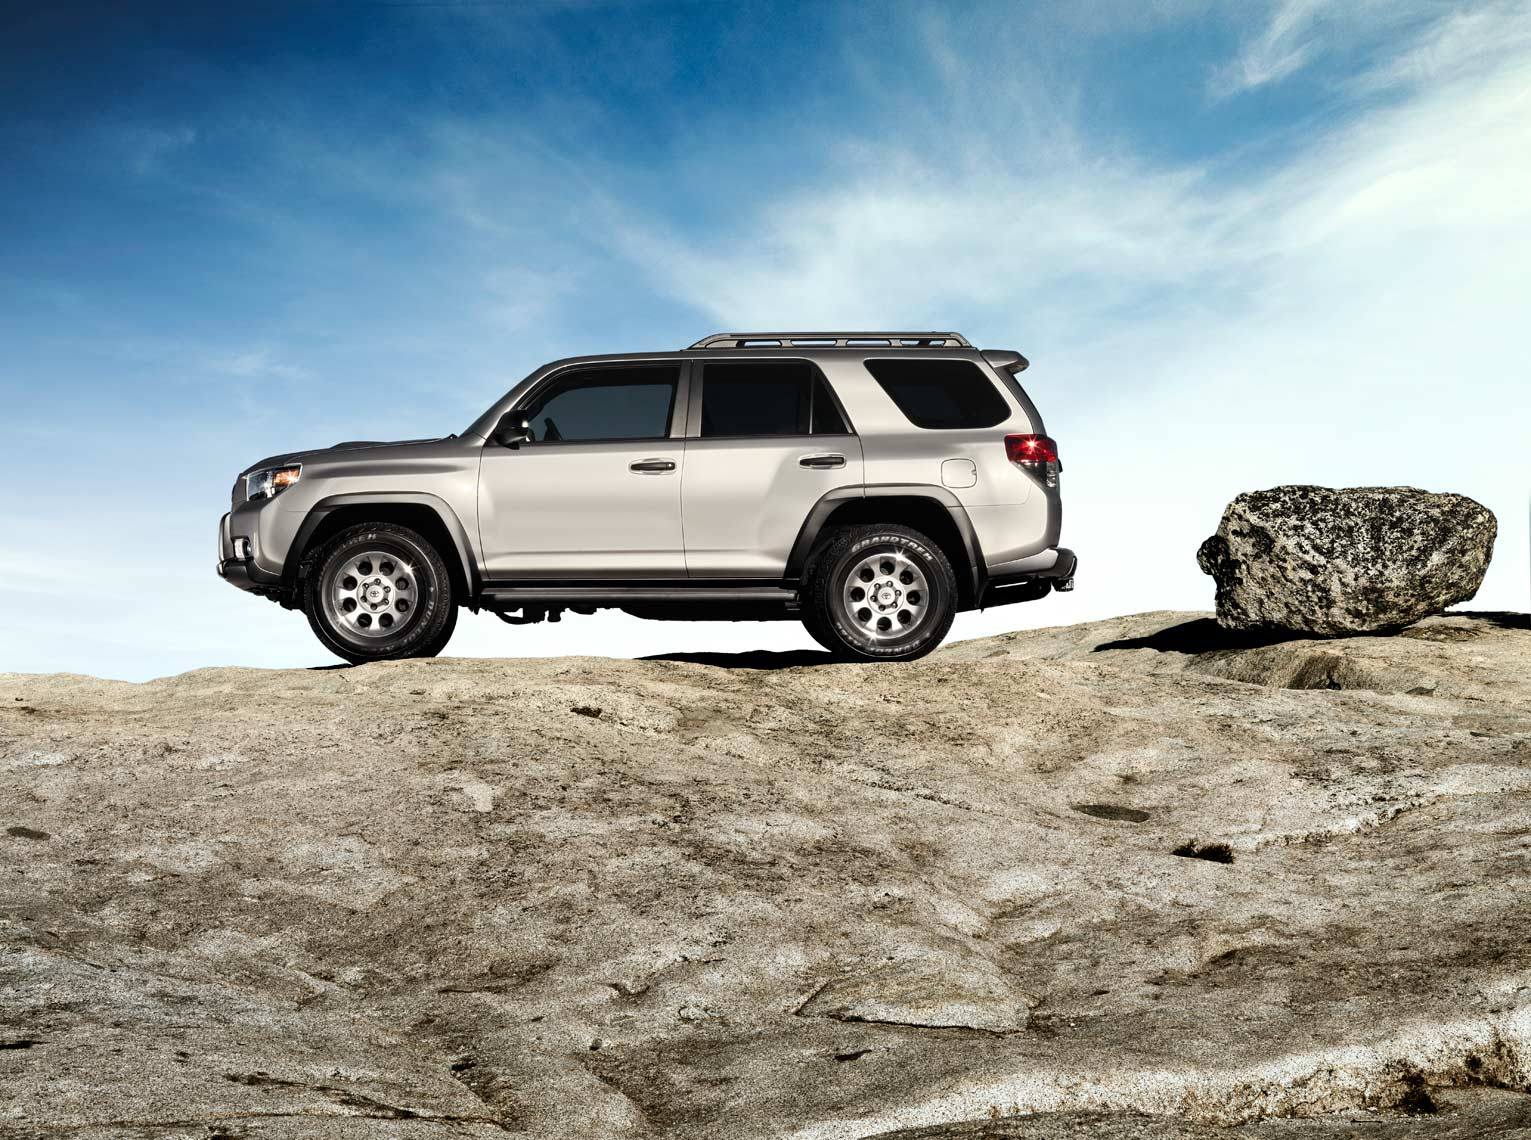 4Runner_Profile_r1-DUP1.jpg